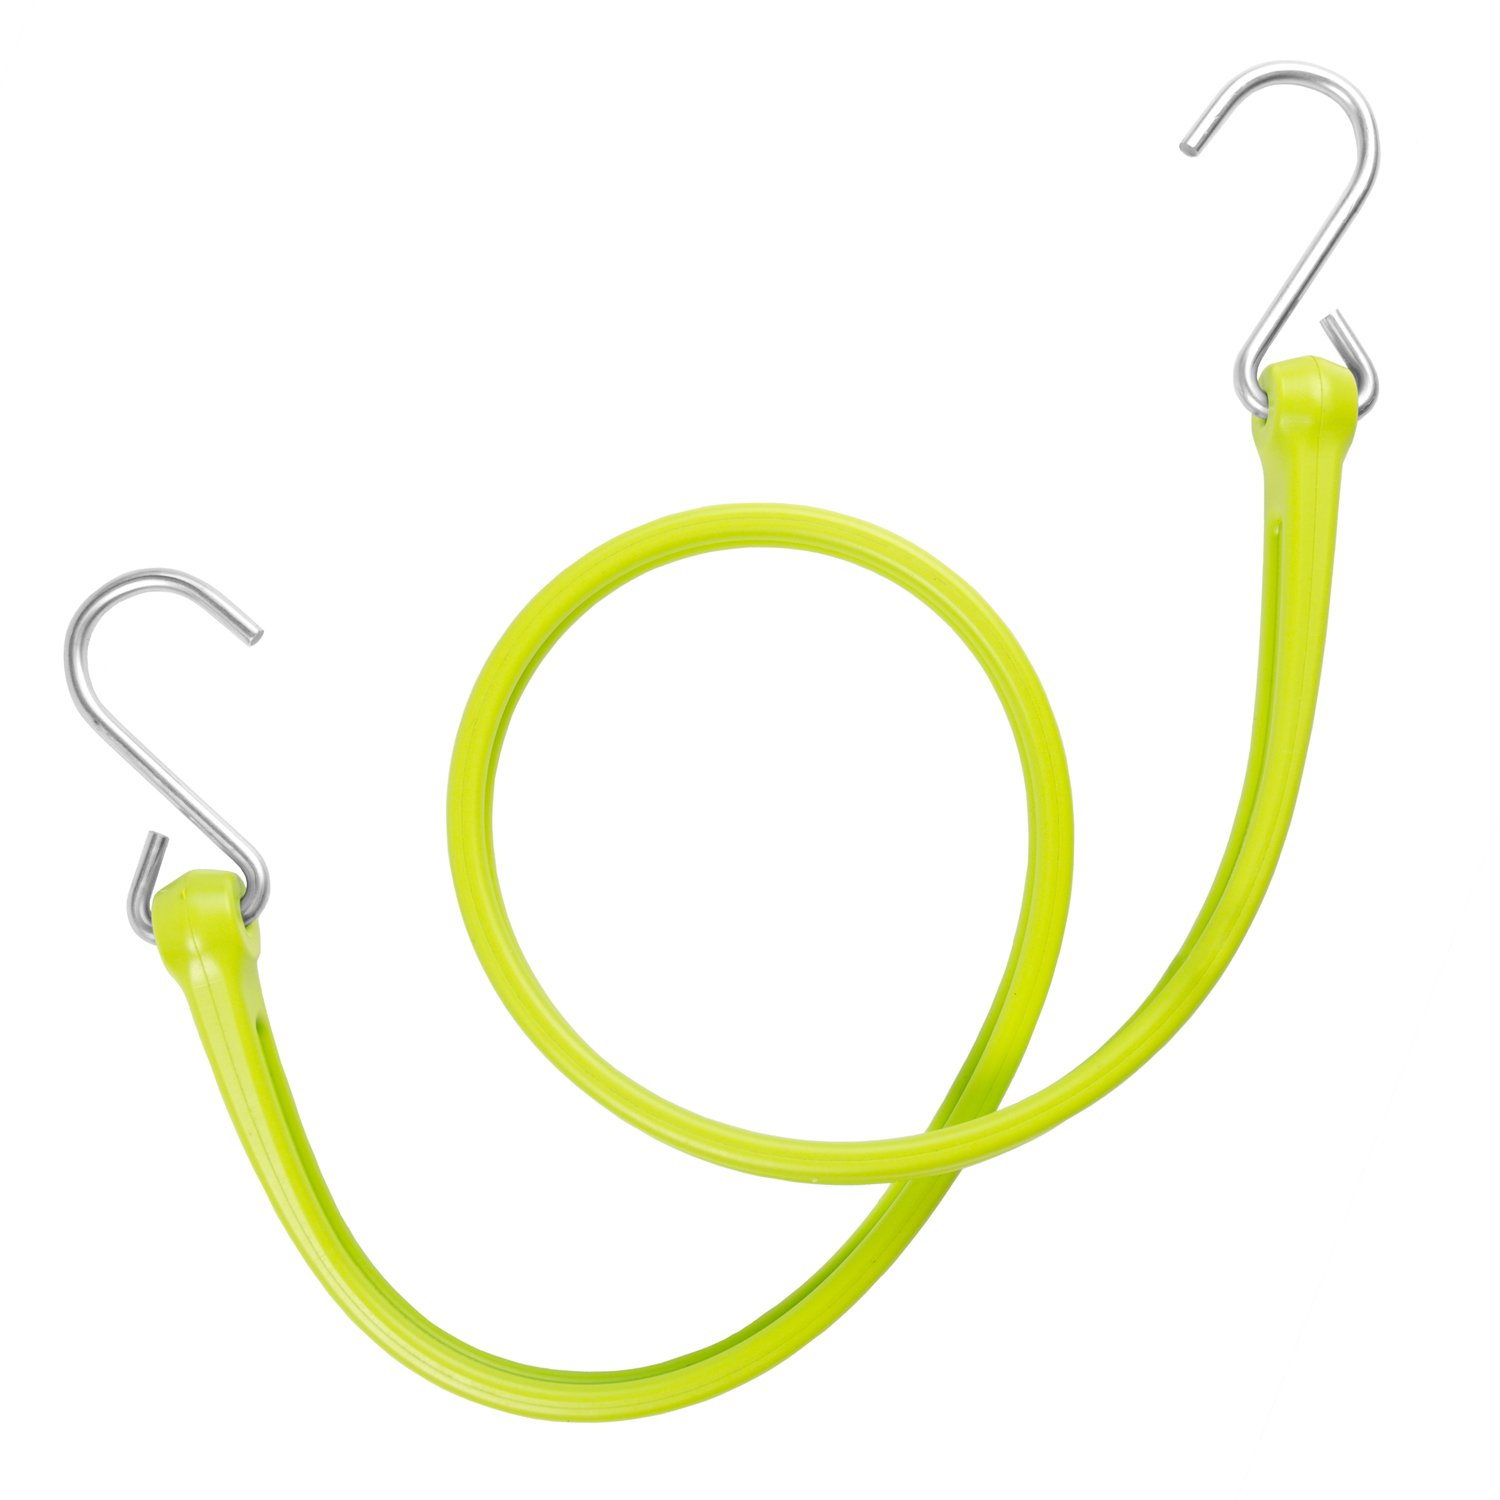 The Perfect Bungee by BihlerFlex, PB36G4PKP Standard Duty Strap with Galvanized Hook, 36'', Safety Green, 4-Pack